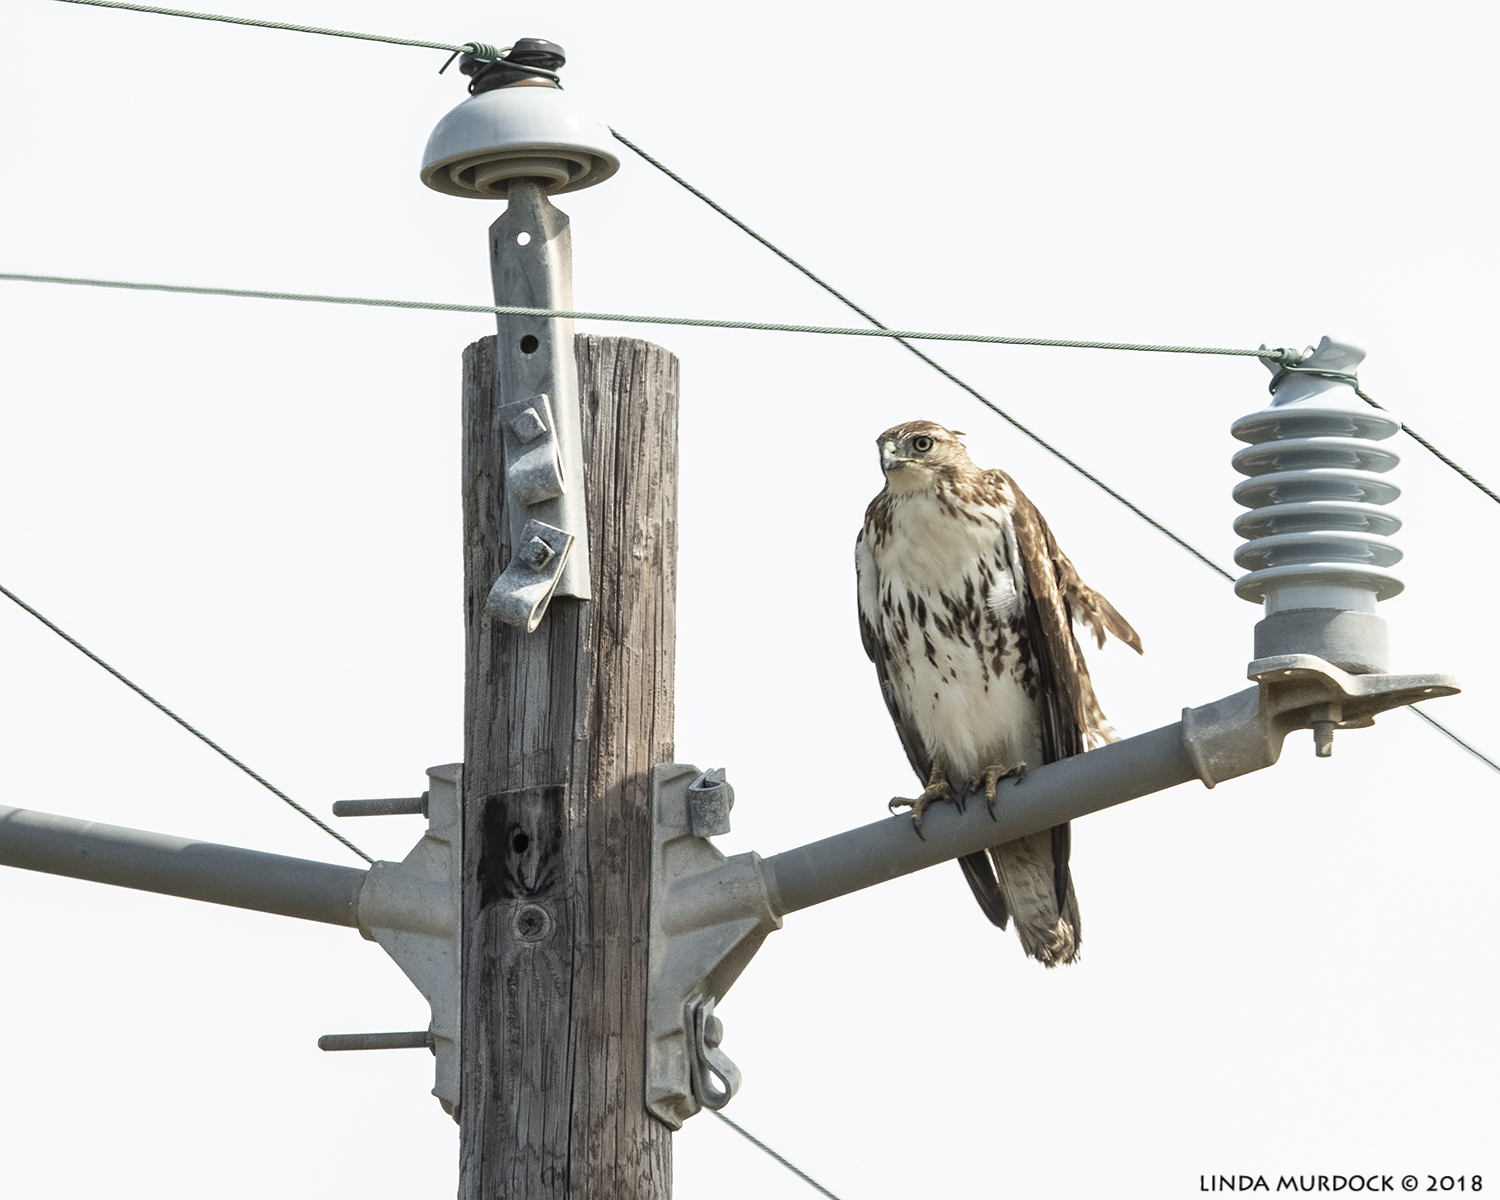 Red-tailed Hawk pretending to be an insulator  Nikon D850 with NIKKOR 500mm f/4E VR with Nikon 1.4x TC ~ 1/2500 sec f/6.3 ISO 1250; braced against truck